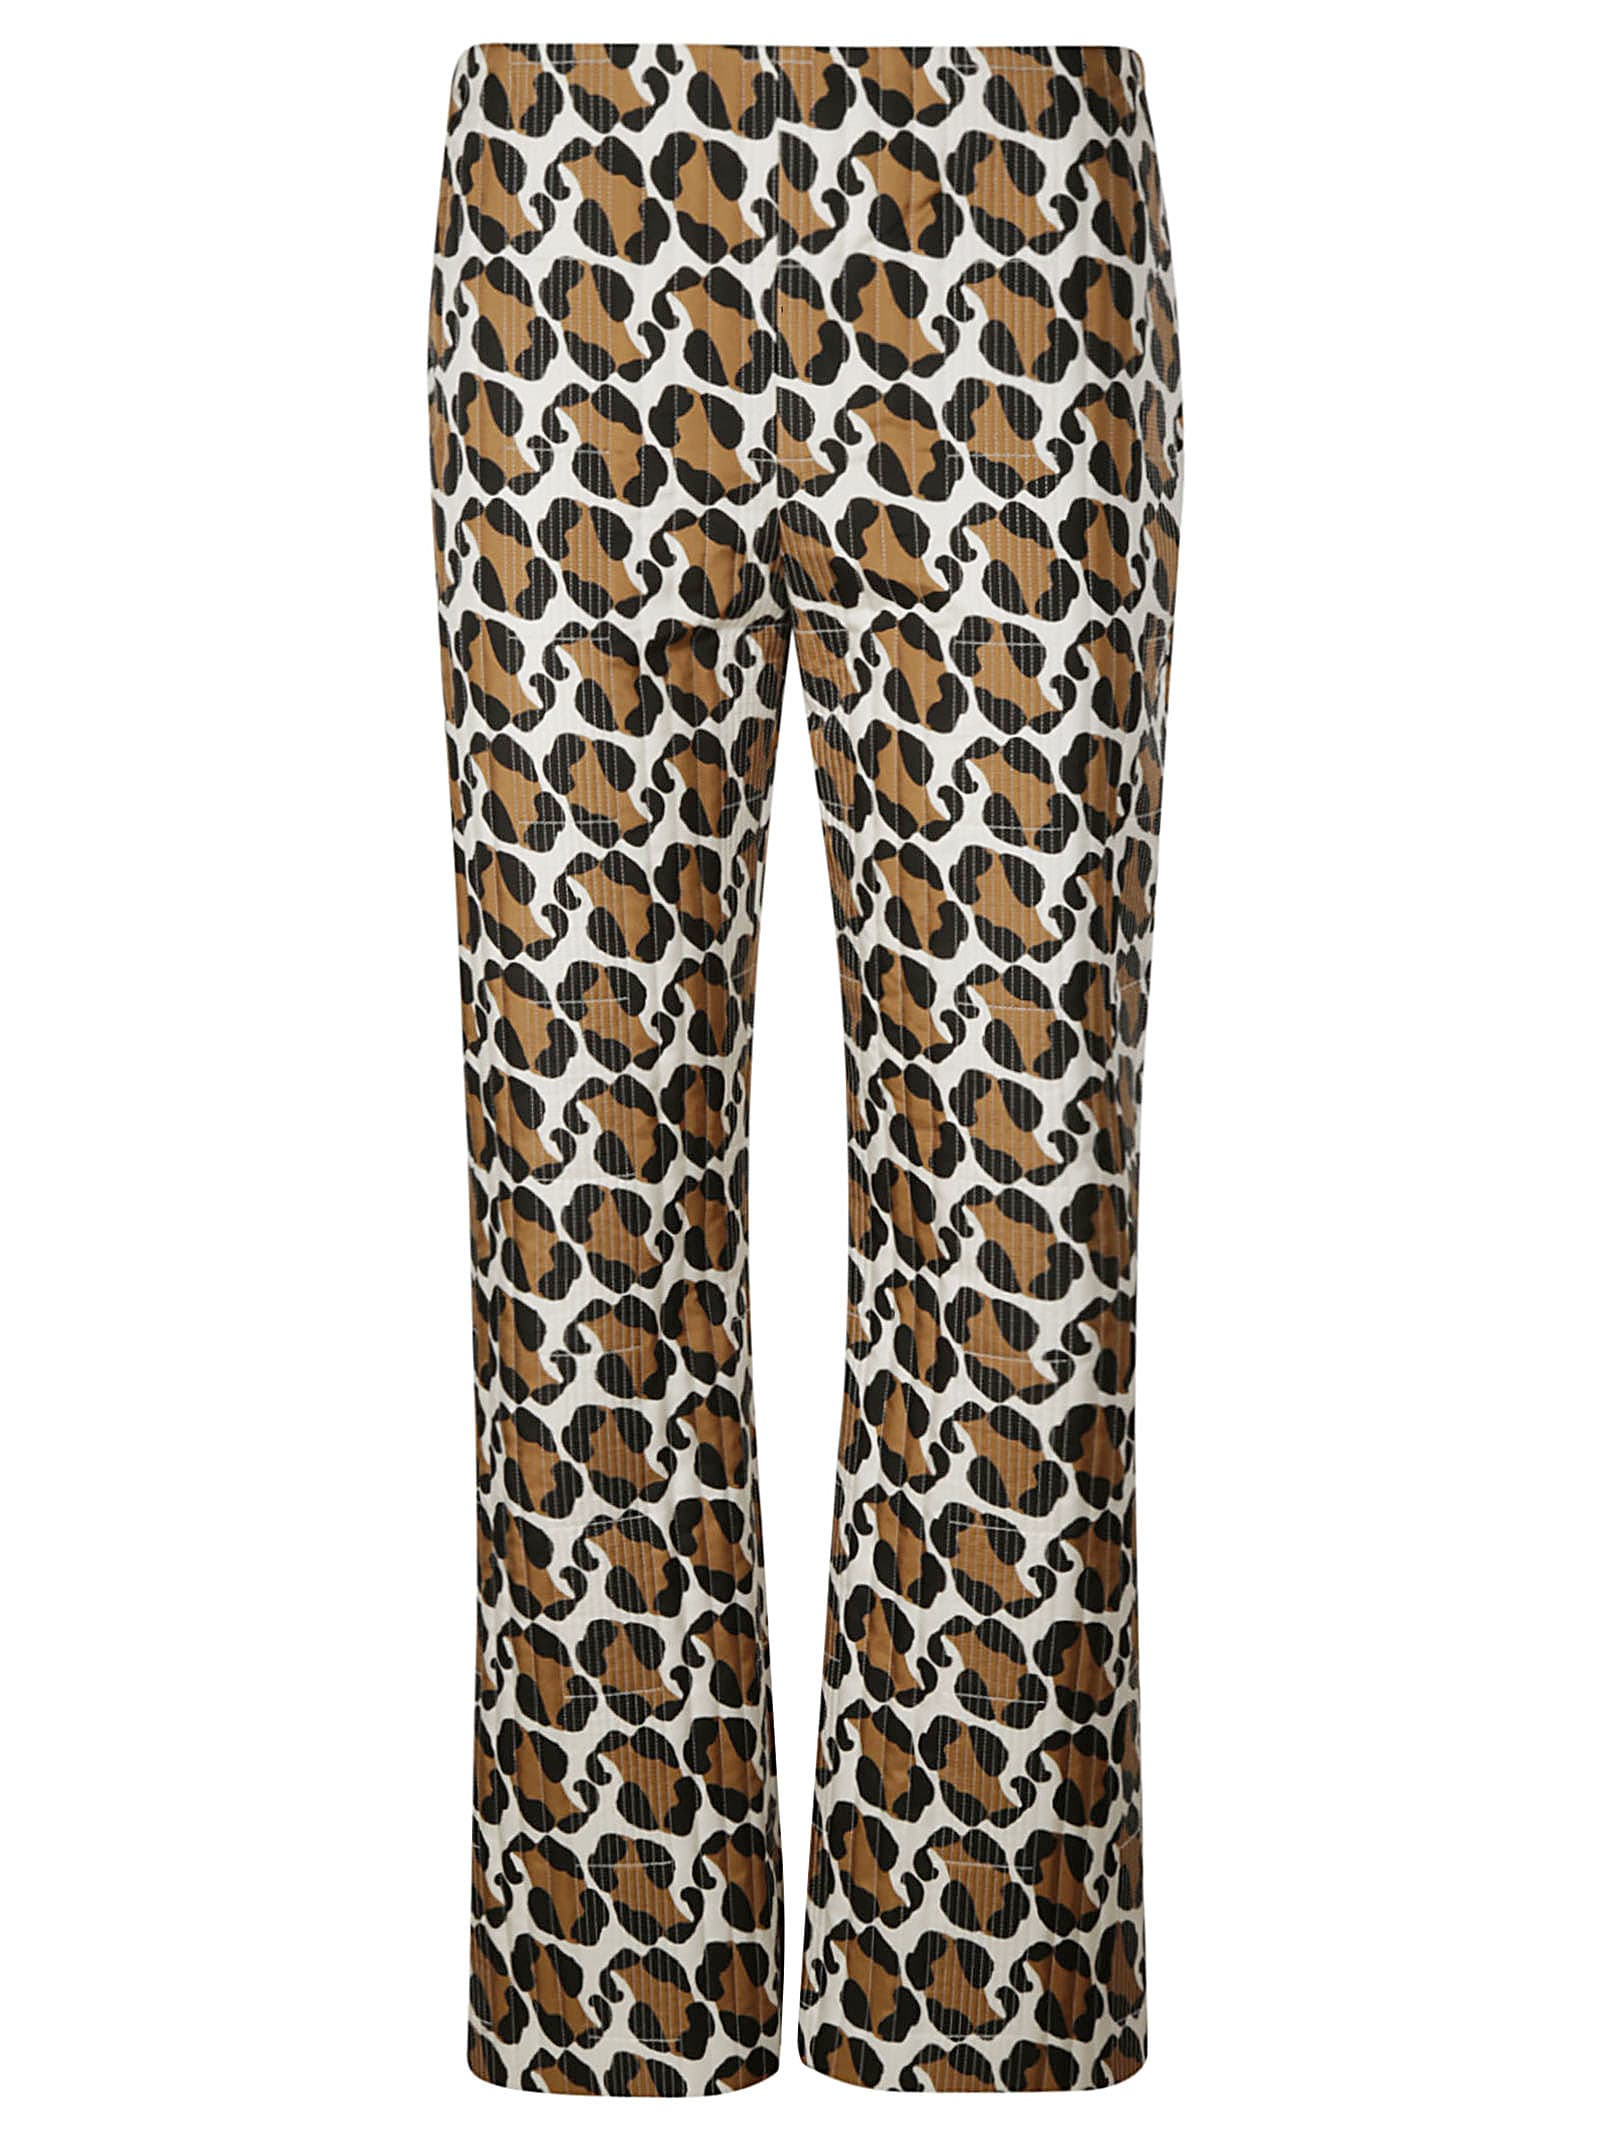 Fendi LEO SPLASH QUILTED TROUSERS